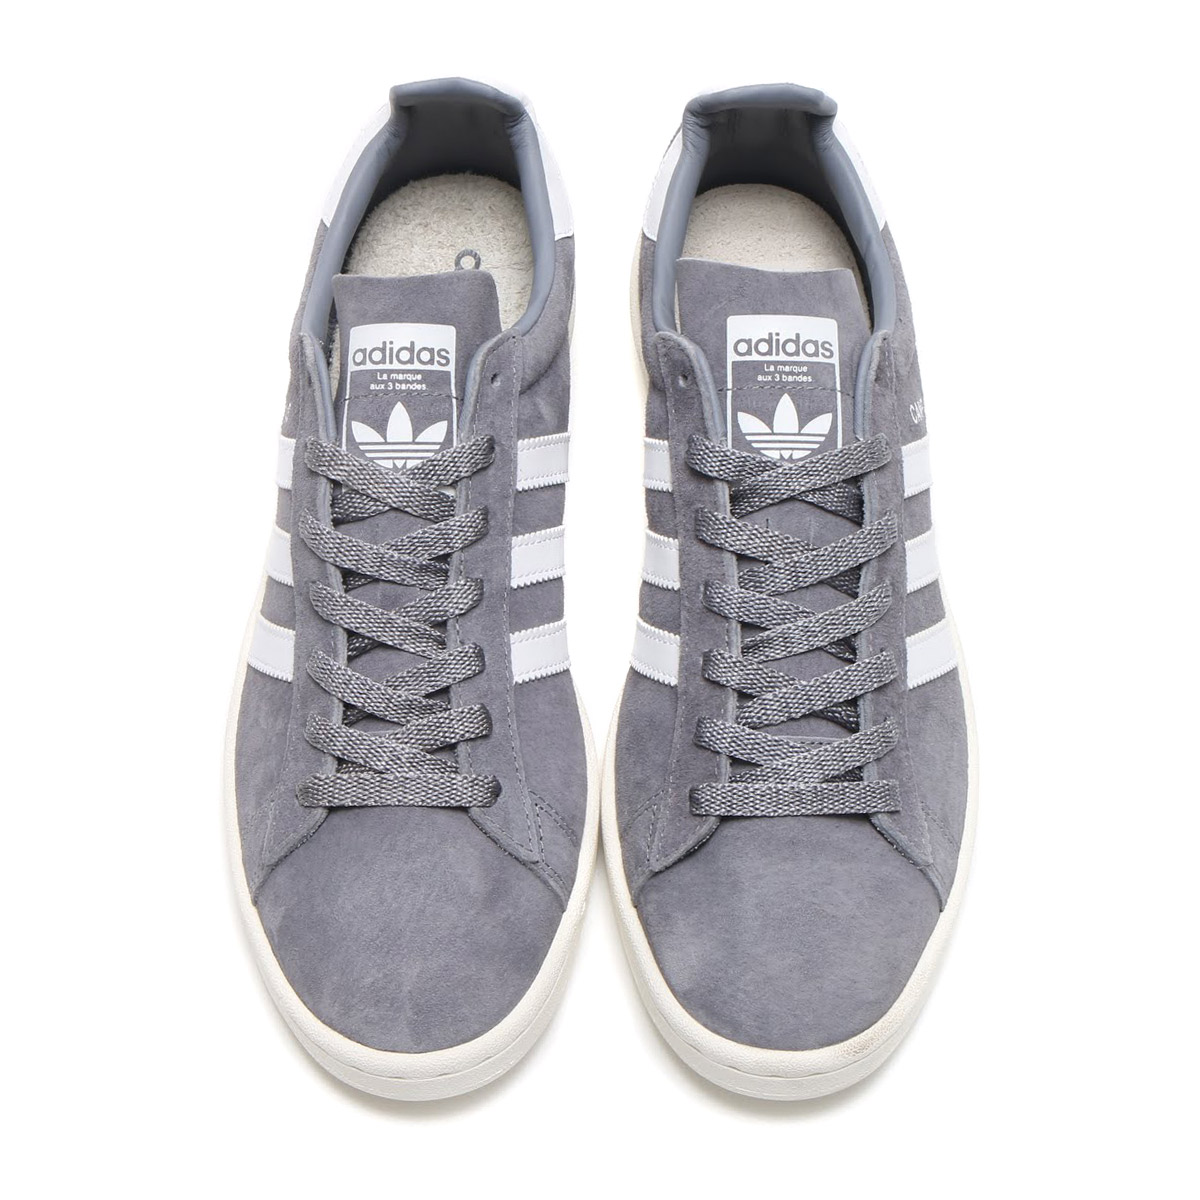 eaea038b3f00 adidas Originals CAMPUS (Adidas original scan pass) (Grey Running  White Chalk White)